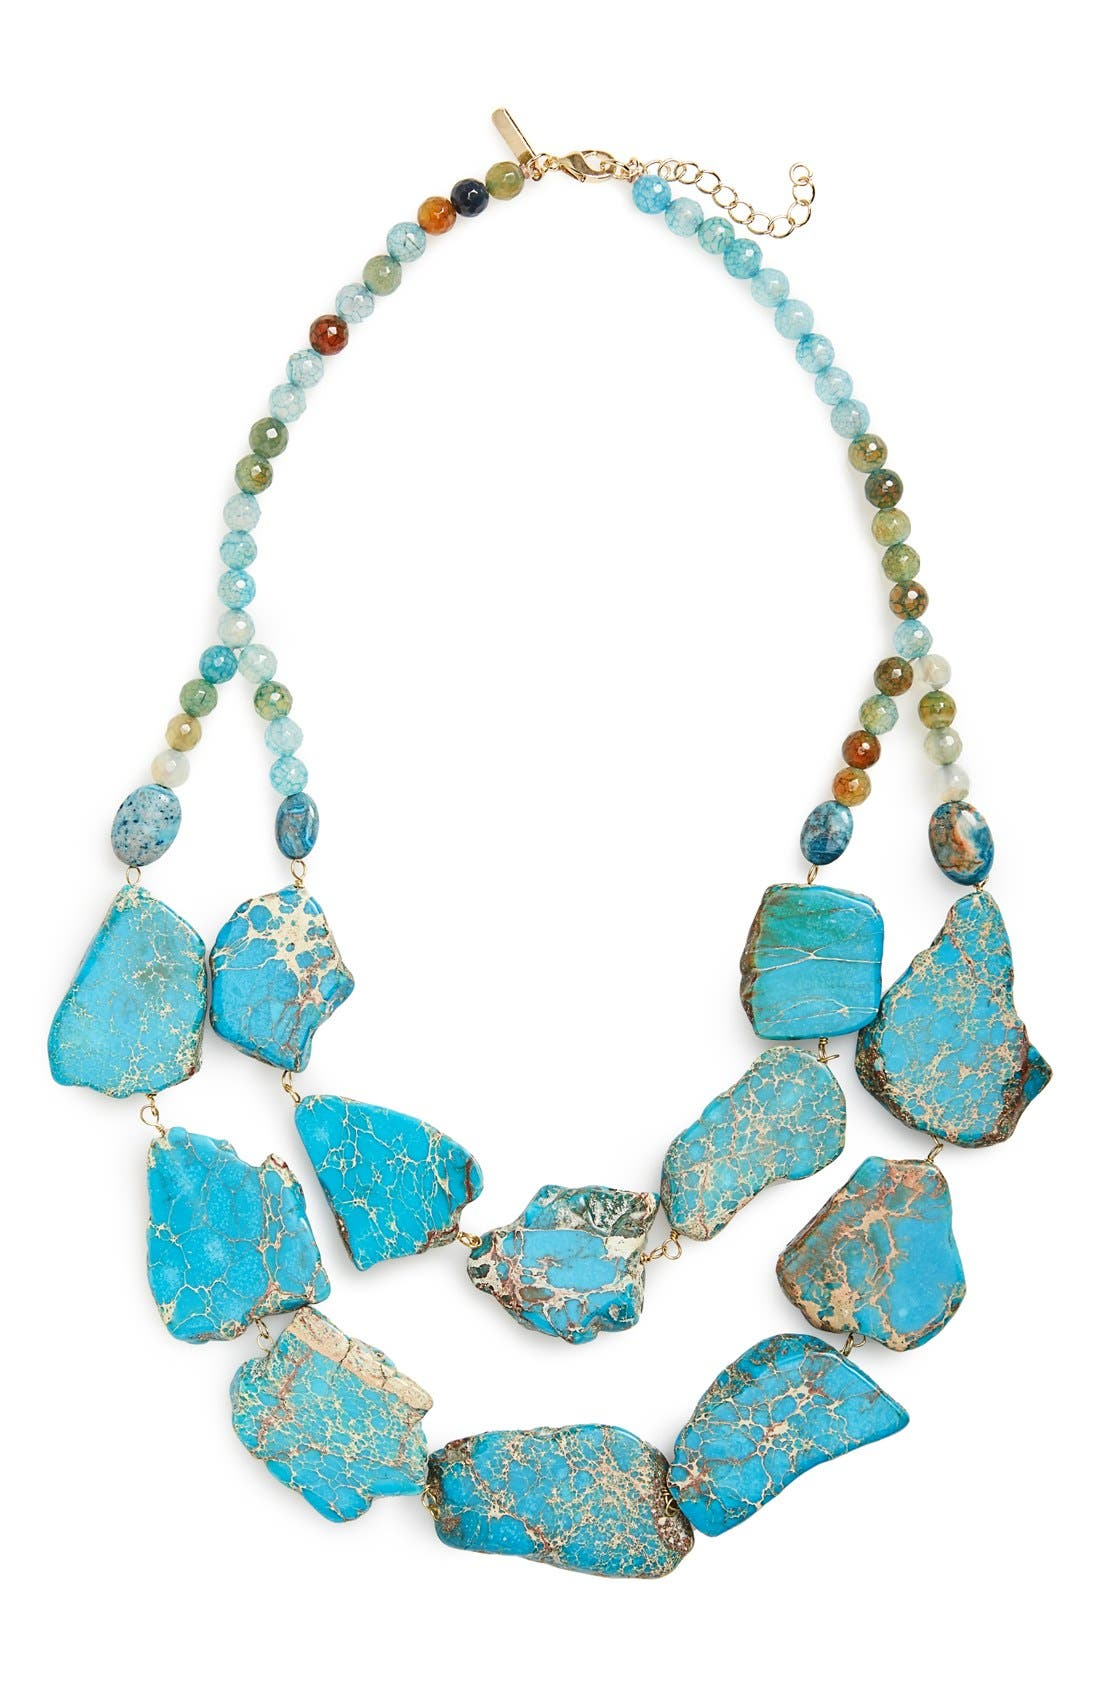 Alternate Image 1 Selected - Panacea Double Row Agate Statement Necklace